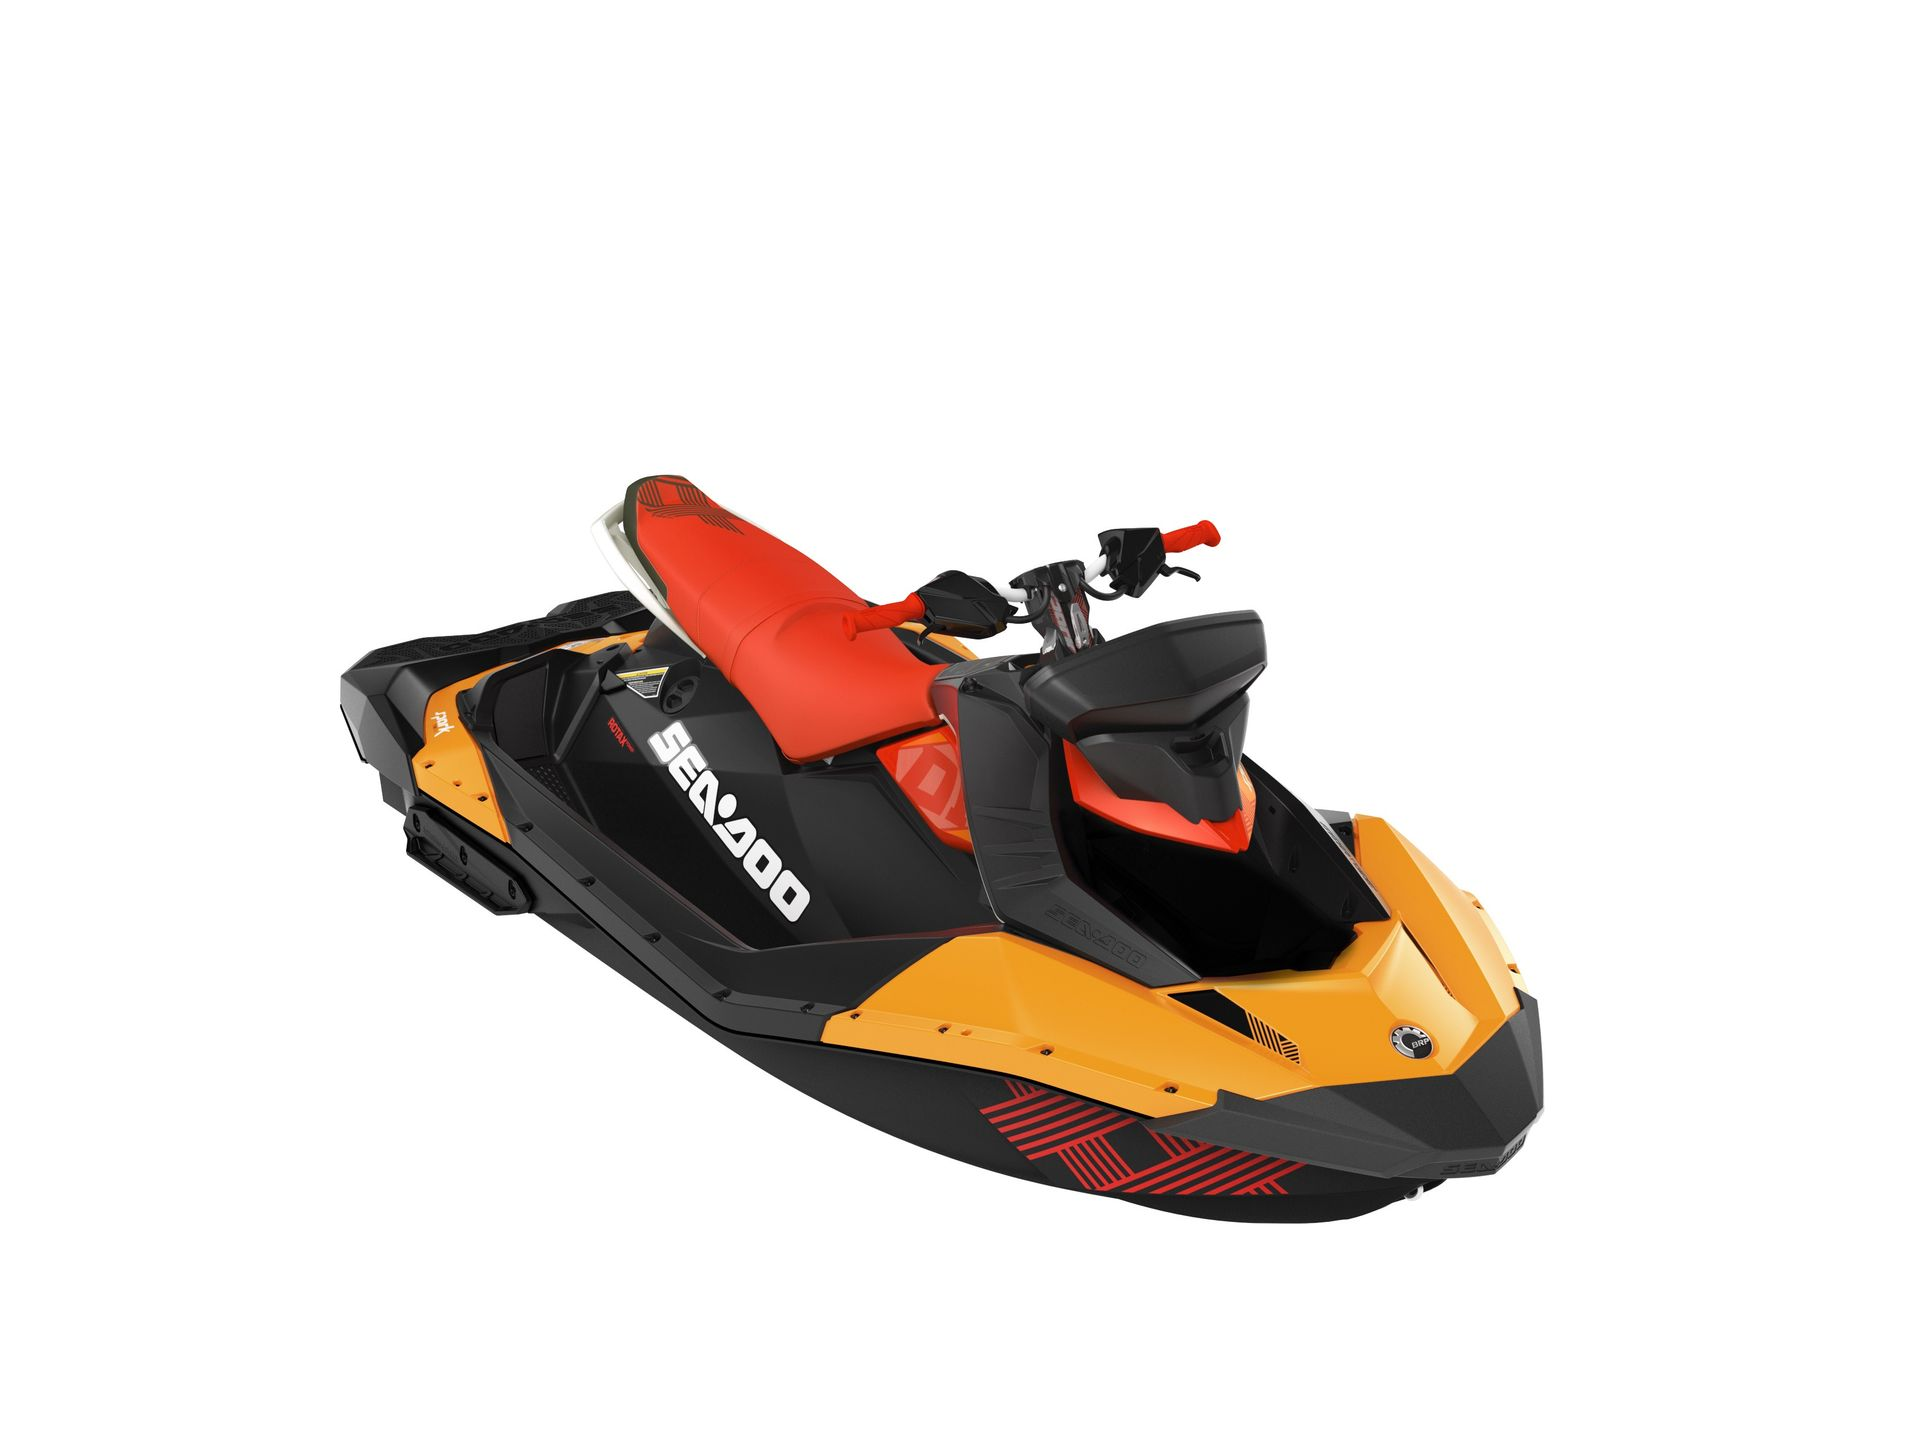 Sea-Doo Aquascooter Spark Trixx 3up Orange/Chili Pepper